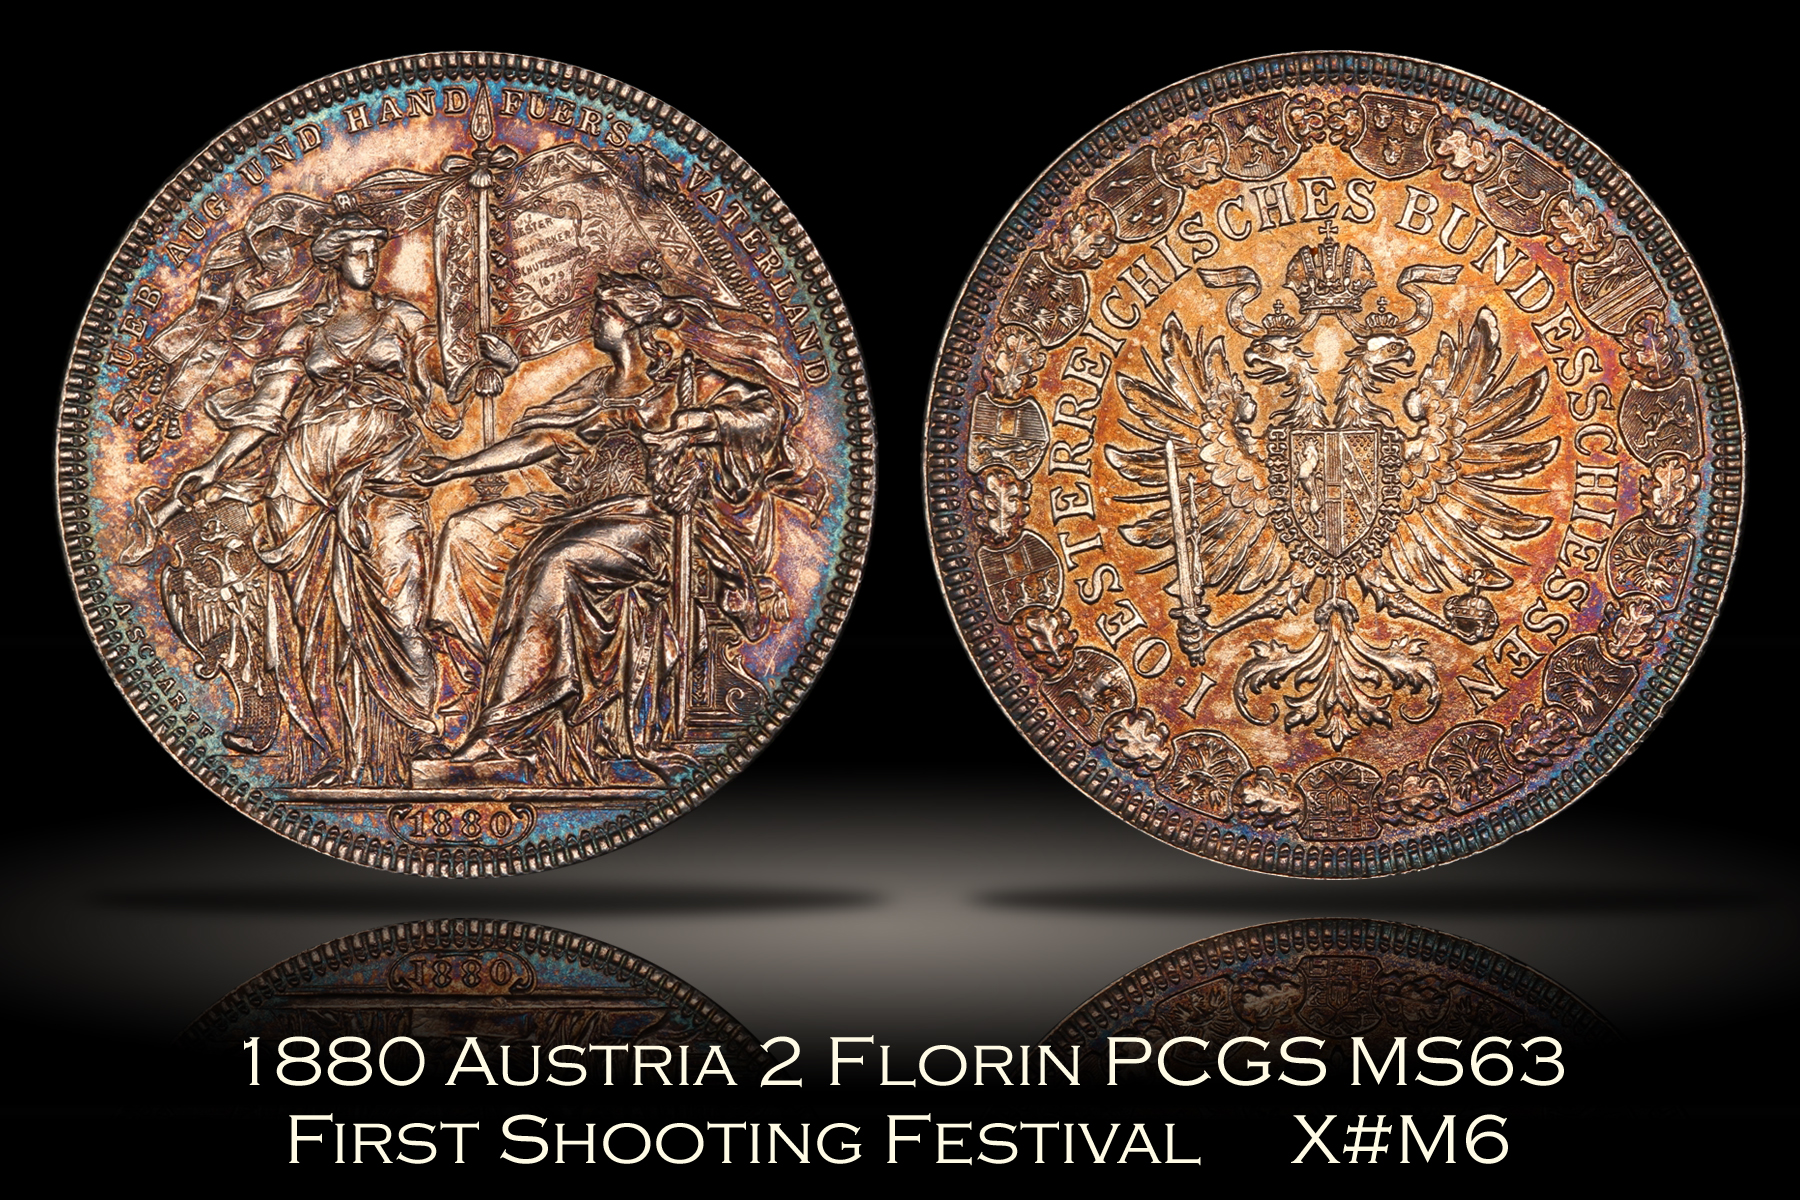 1880 Austria 2 Florin PCGS MS63 First Shooting Festival Medal